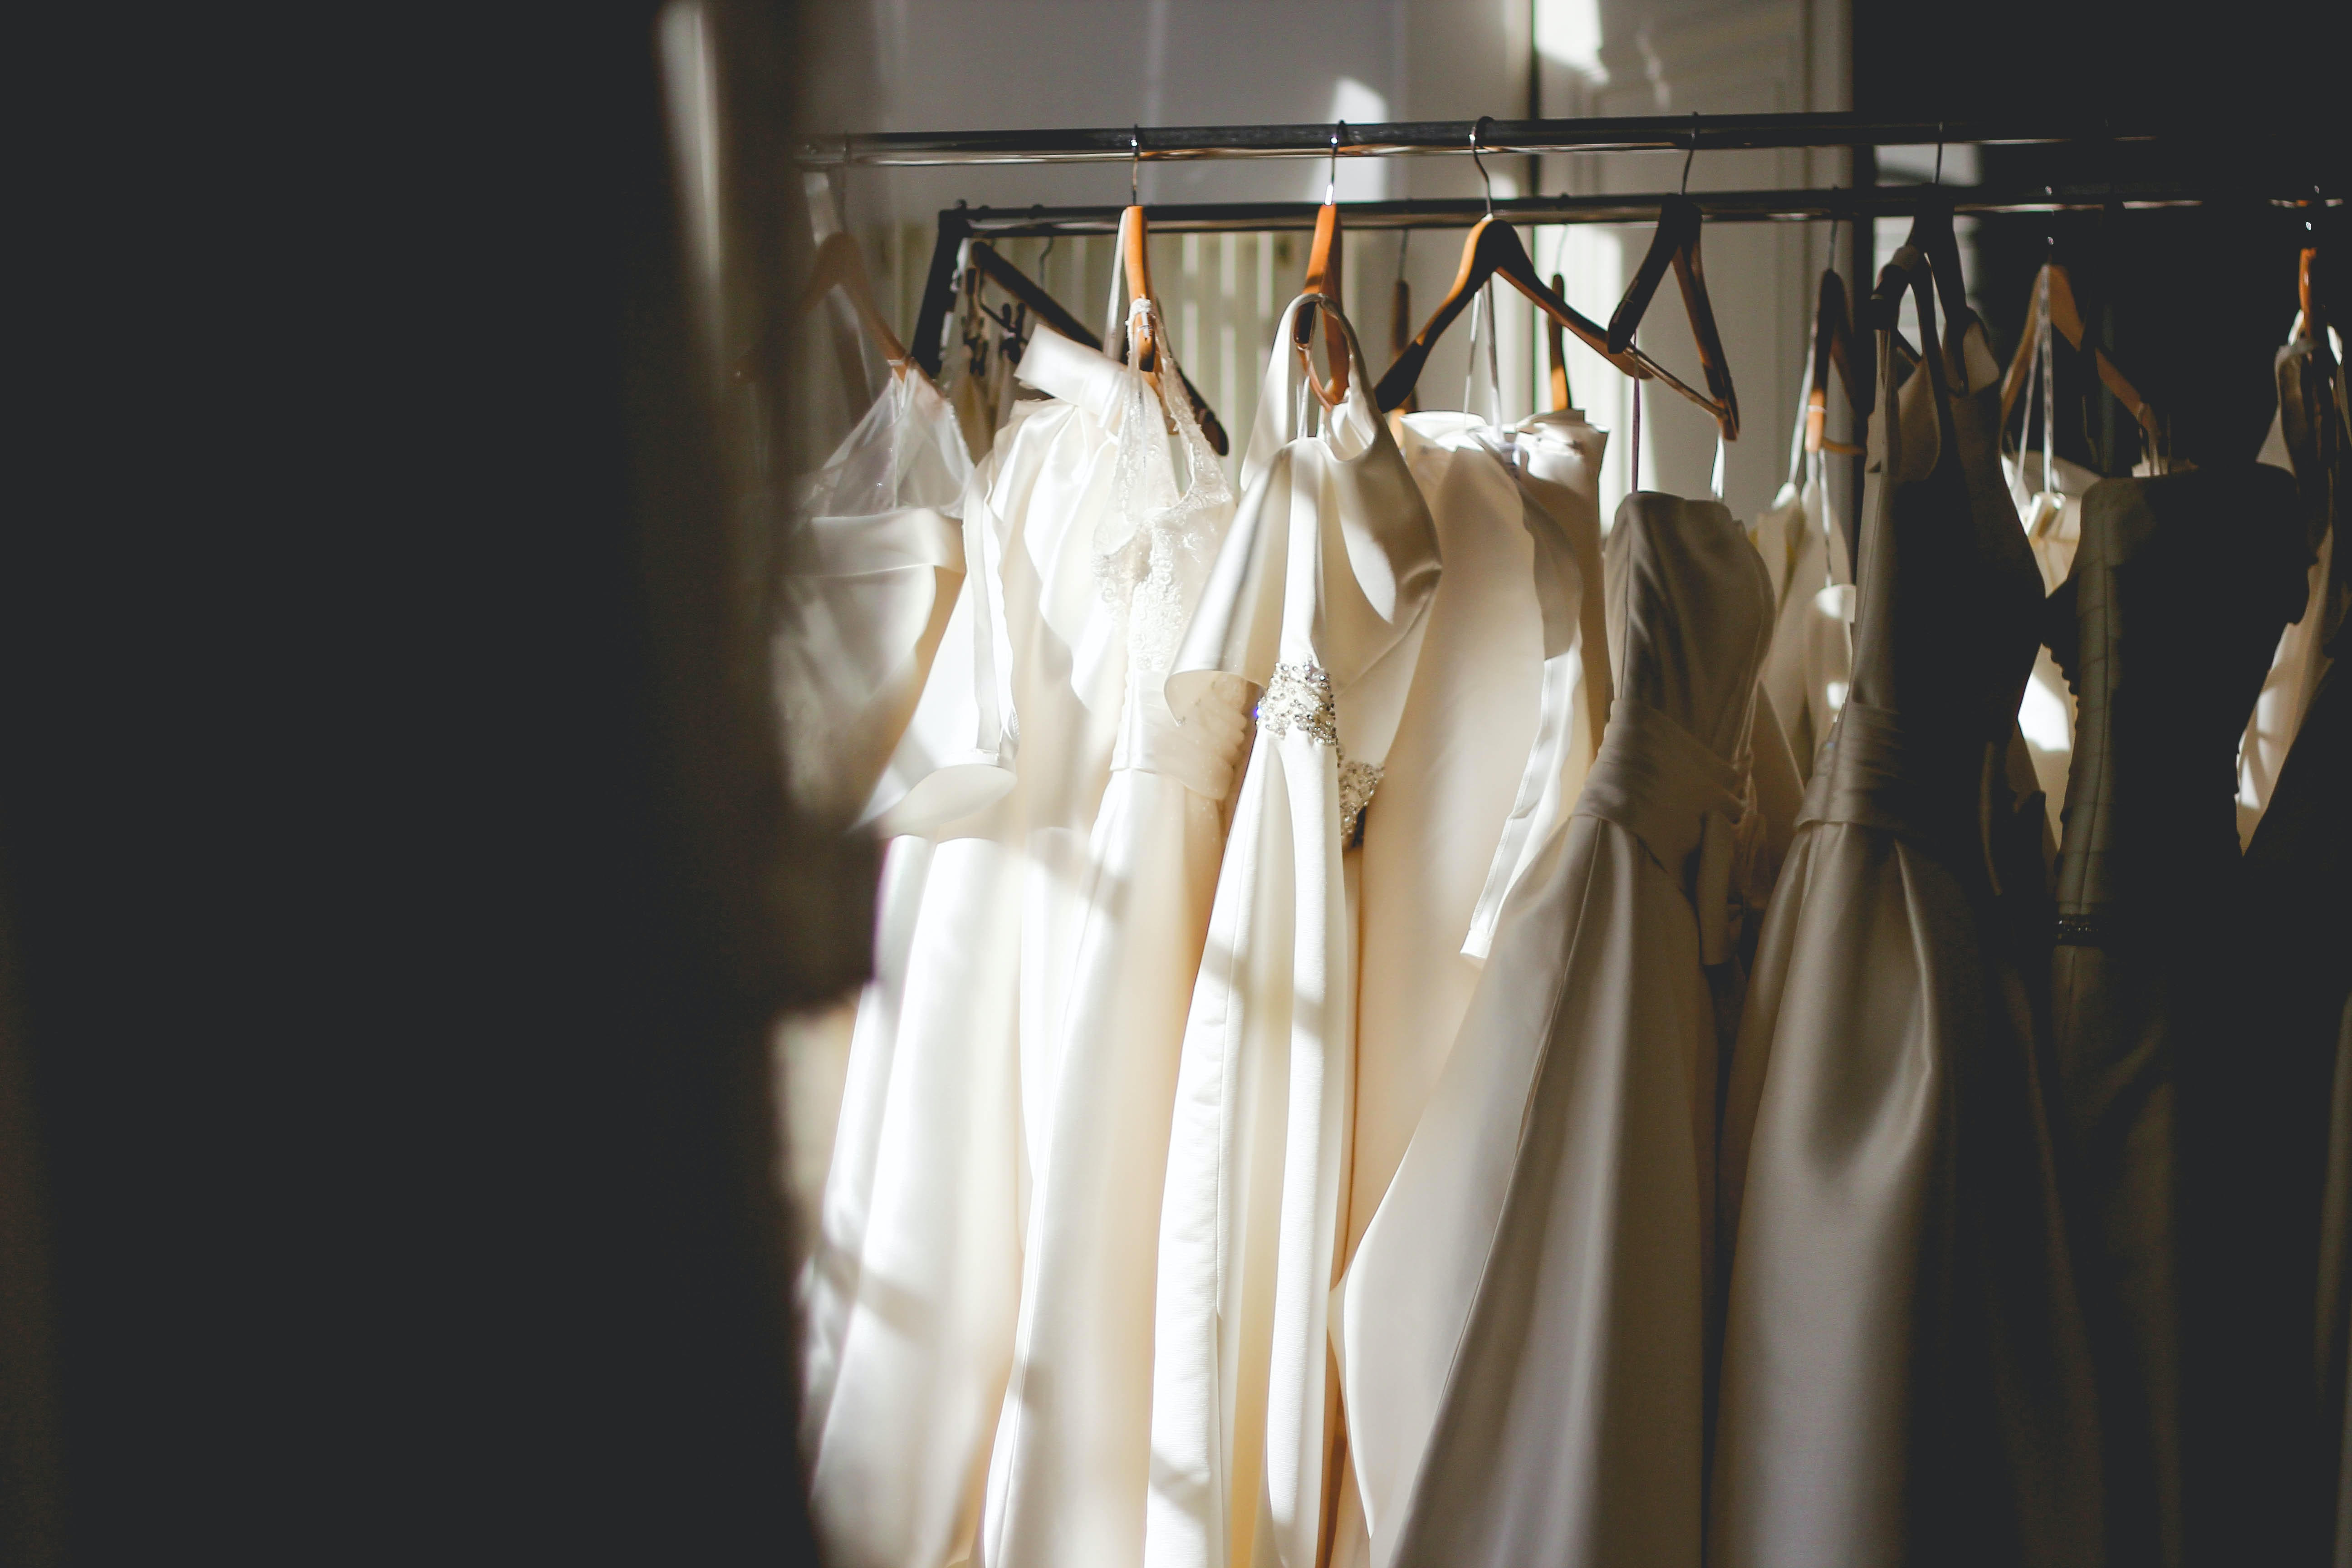 White and beige dresses on hangers in a store